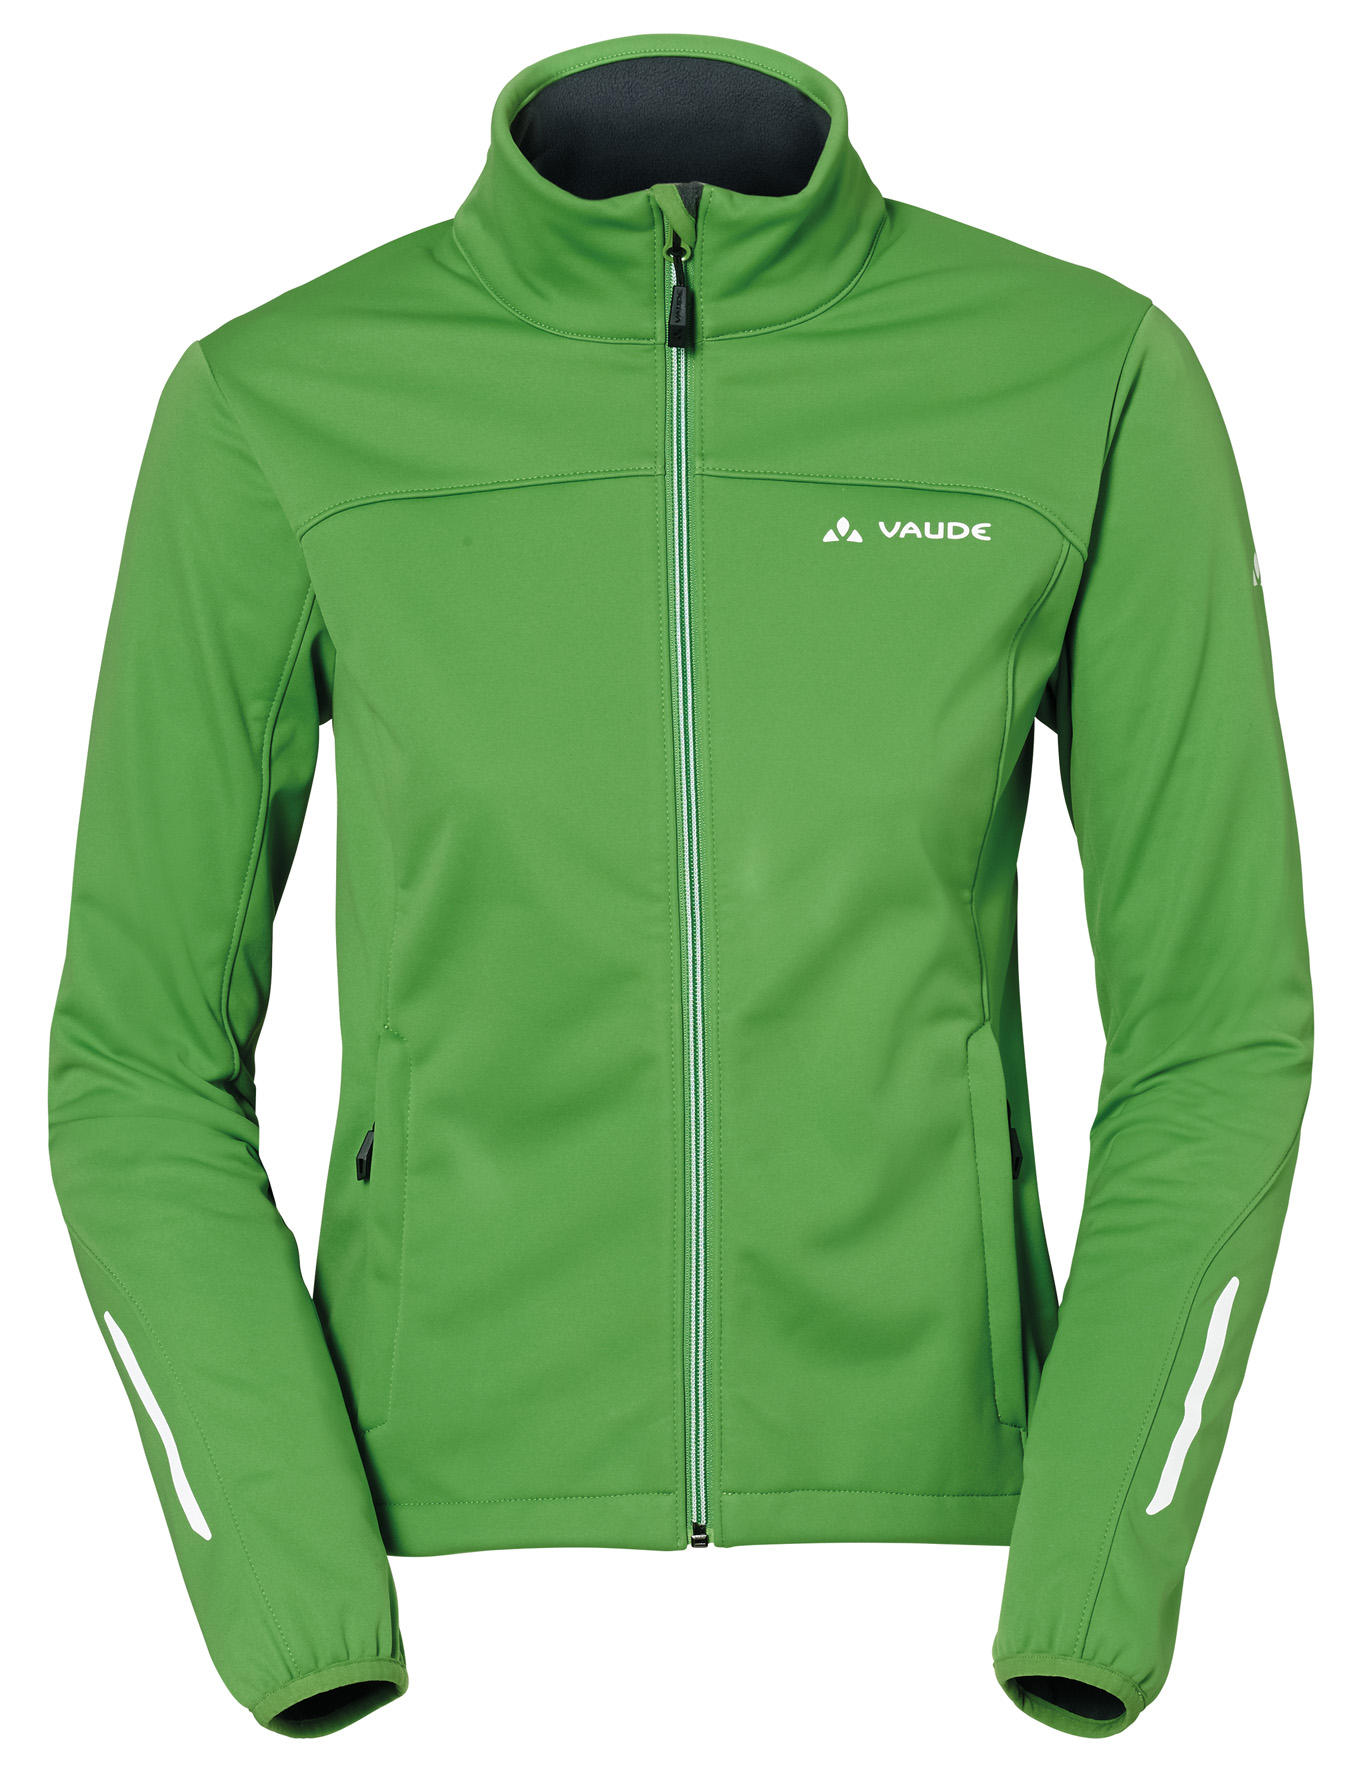 VAUDE Women´s Wintry Jacket III parrot green Größe 36 - schneider-sports